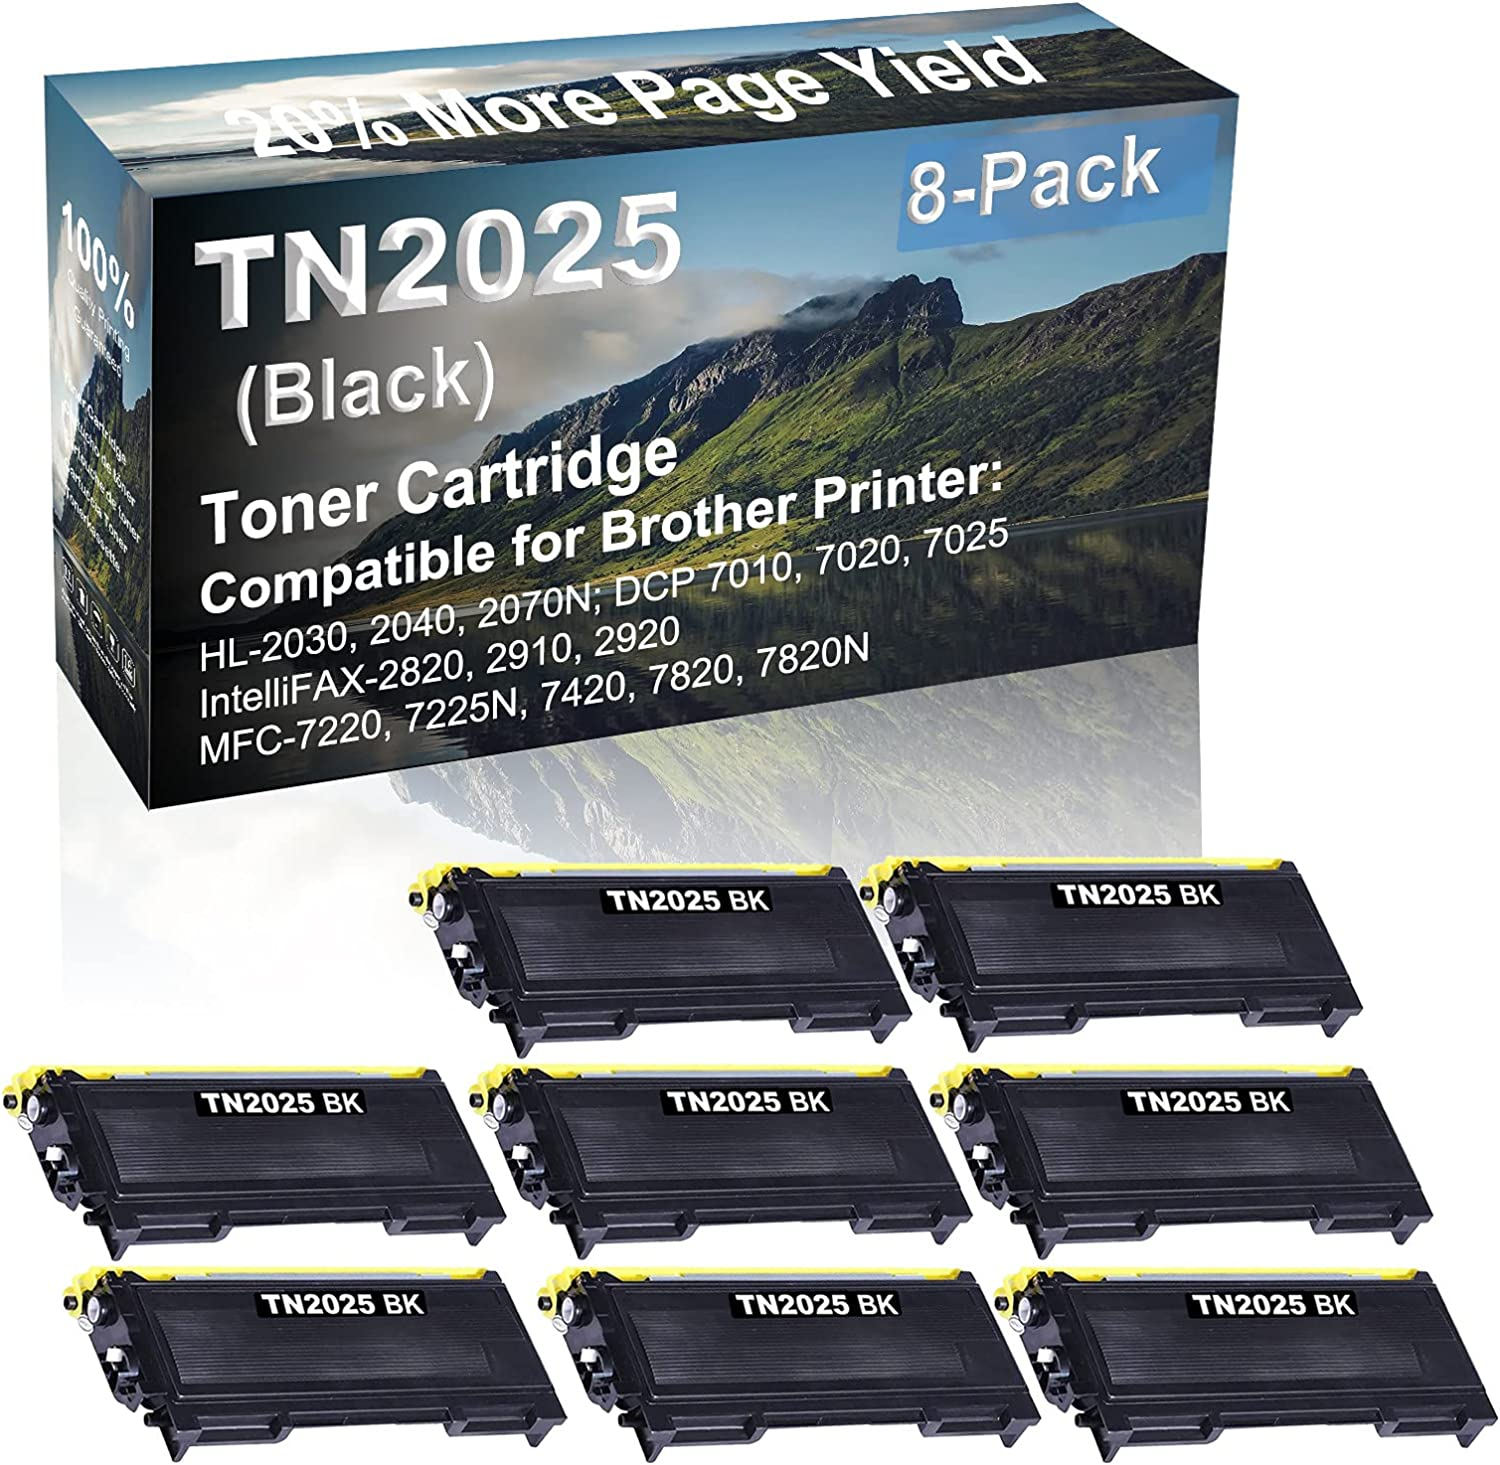 8-Pack Compatible High Yield IntelliFAX-2820, 2910, 2920 Printer Cartridge Replacement for Brother TN2025 Toner Cartridge (Black)